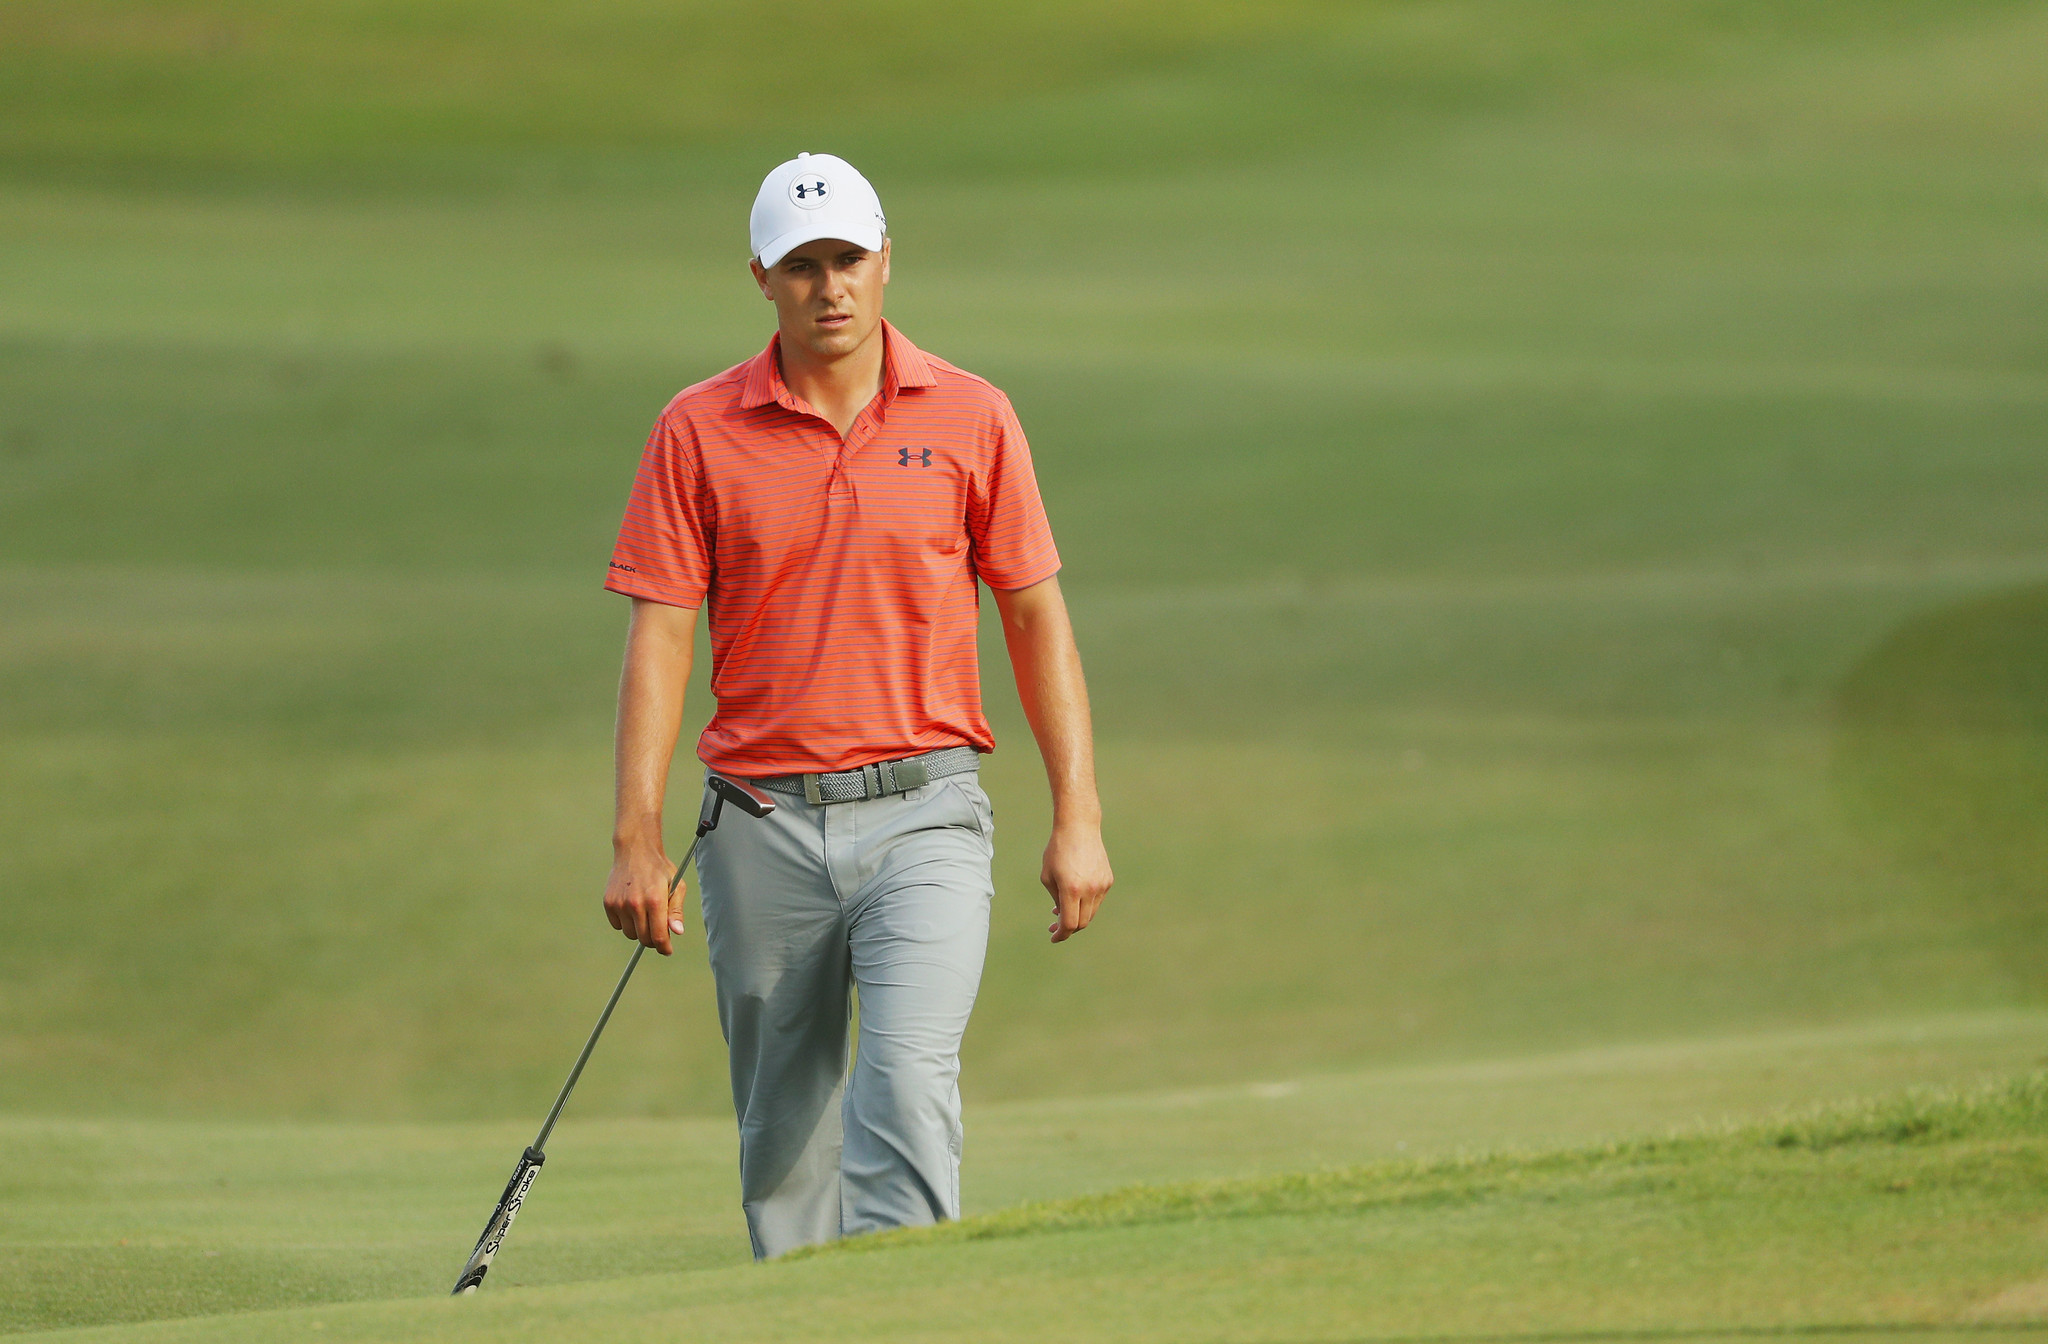 Jordan Spieth's Masters collapse as integral to golf as heroic victories - Chicago Tribune